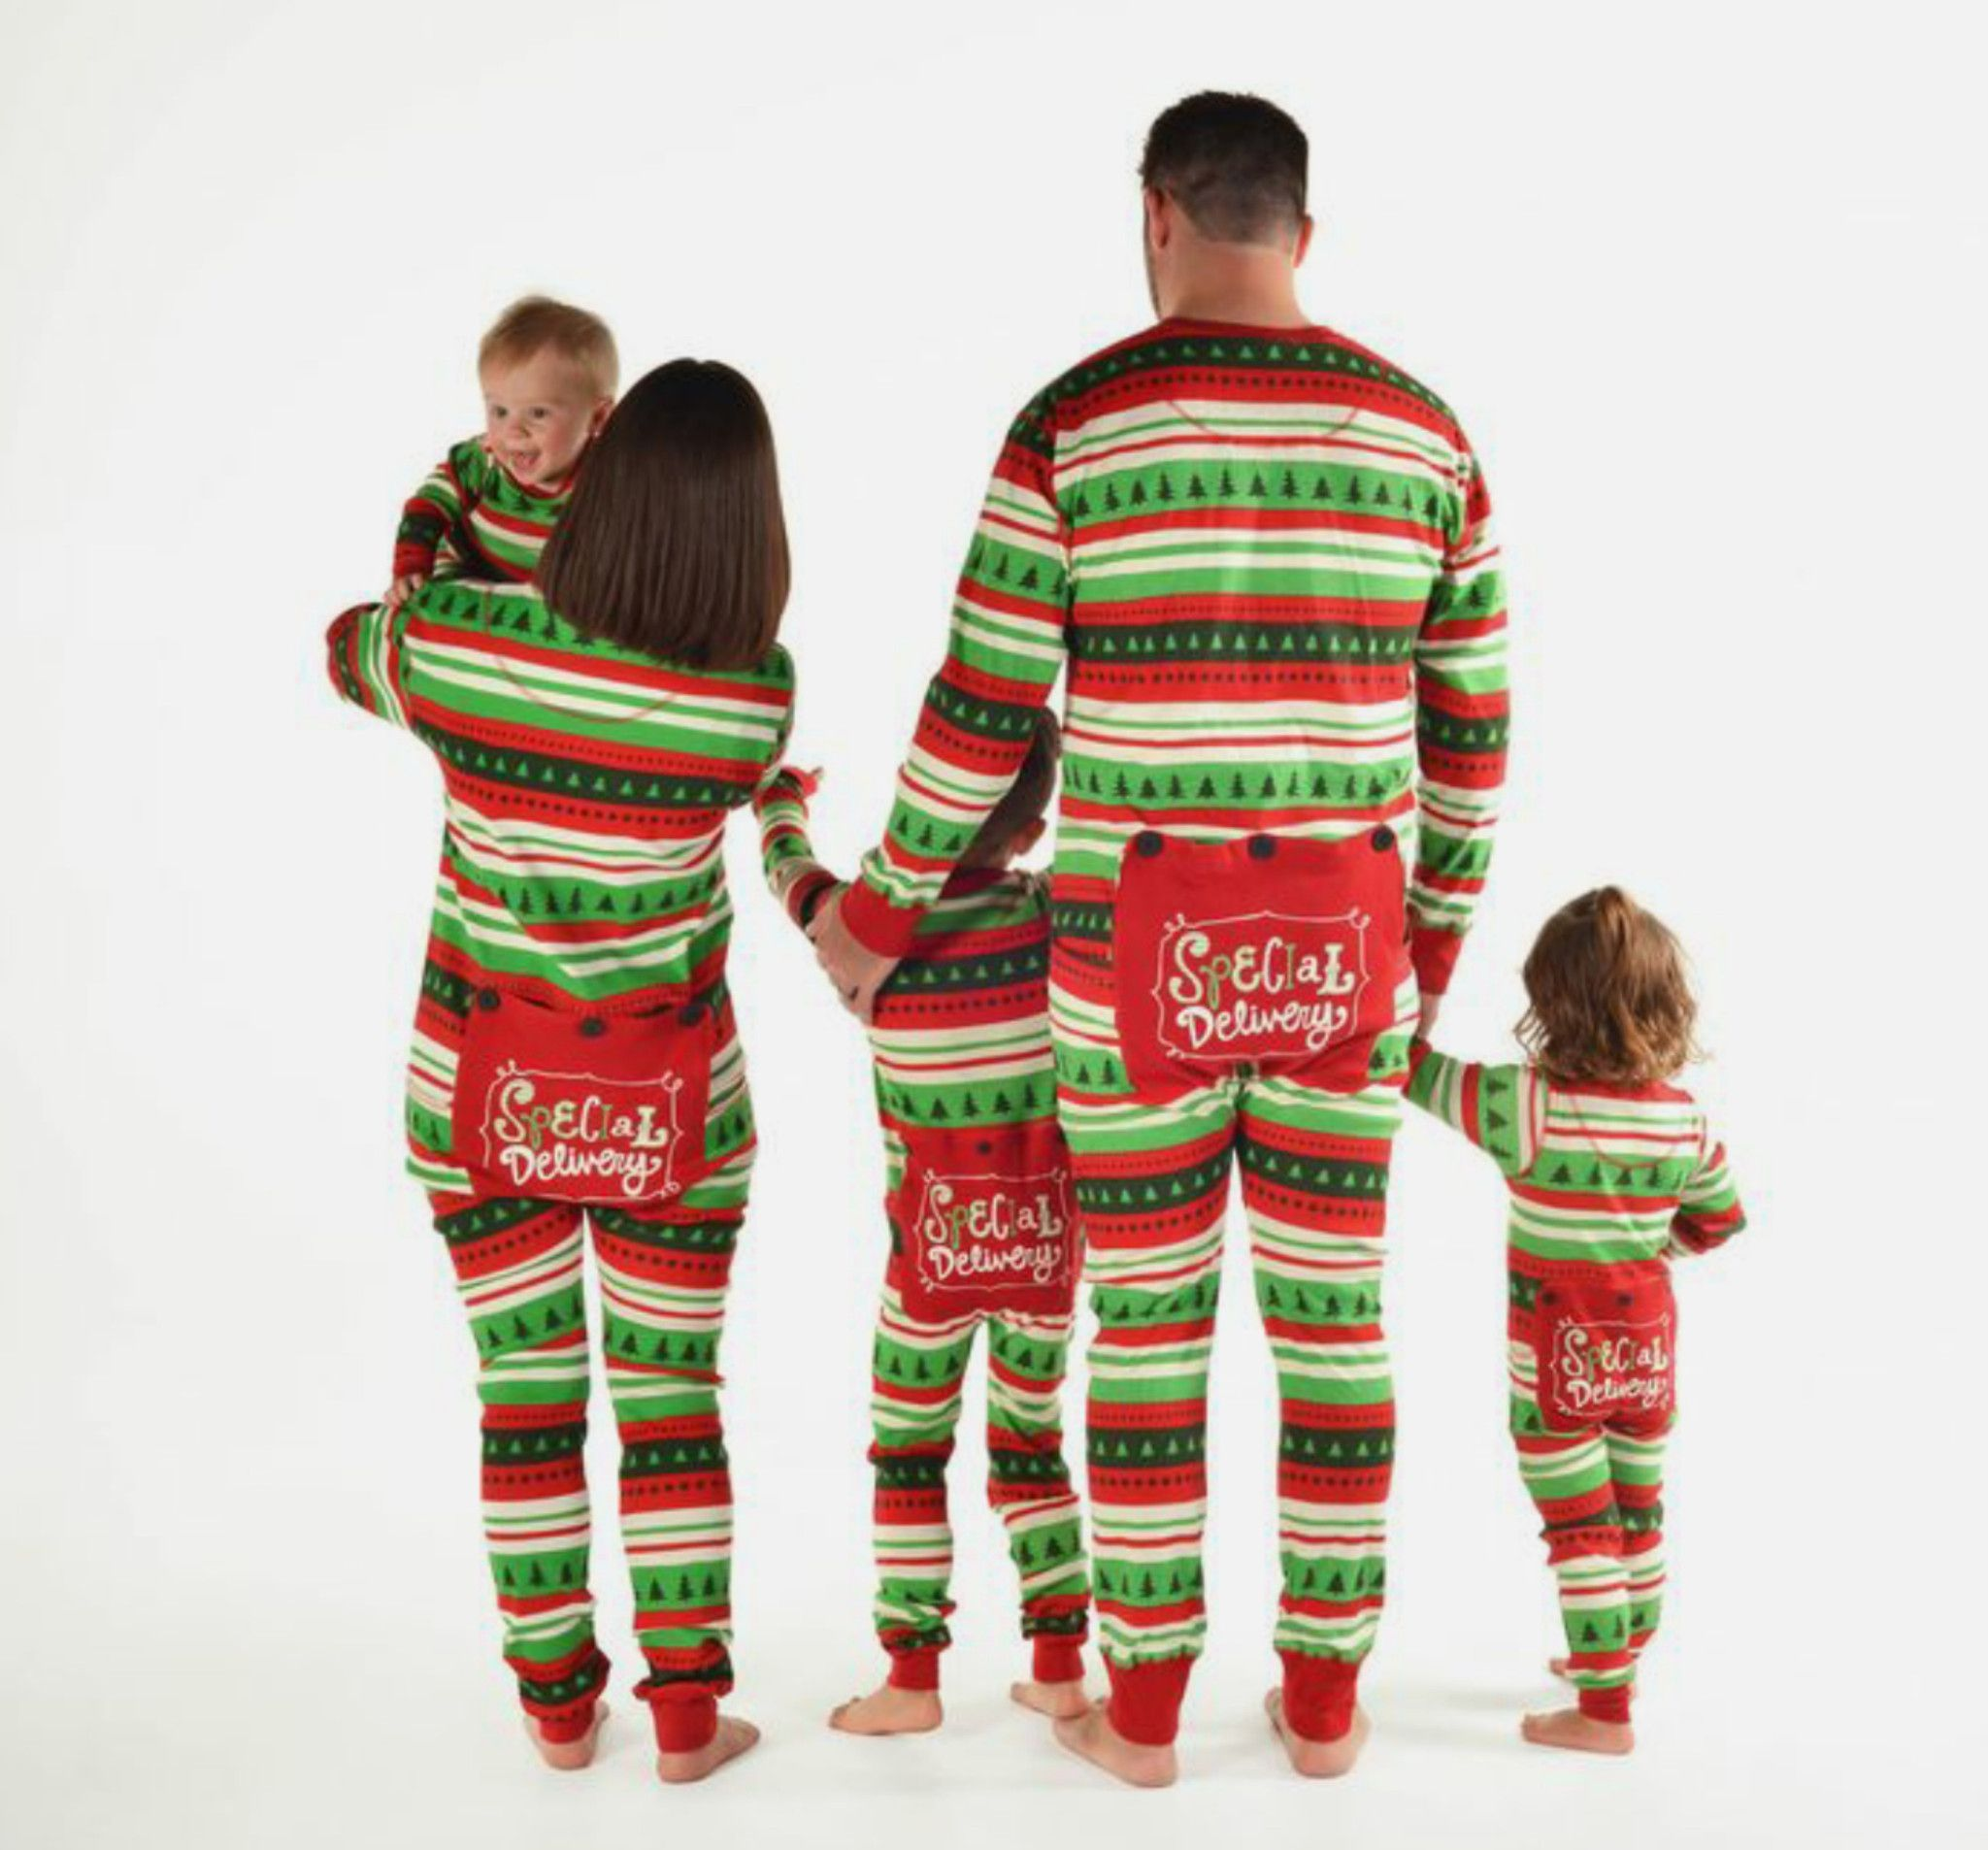 Adorable Matching Christmas Pjs for the whole family! Red,Green,Special  Delivery Matching